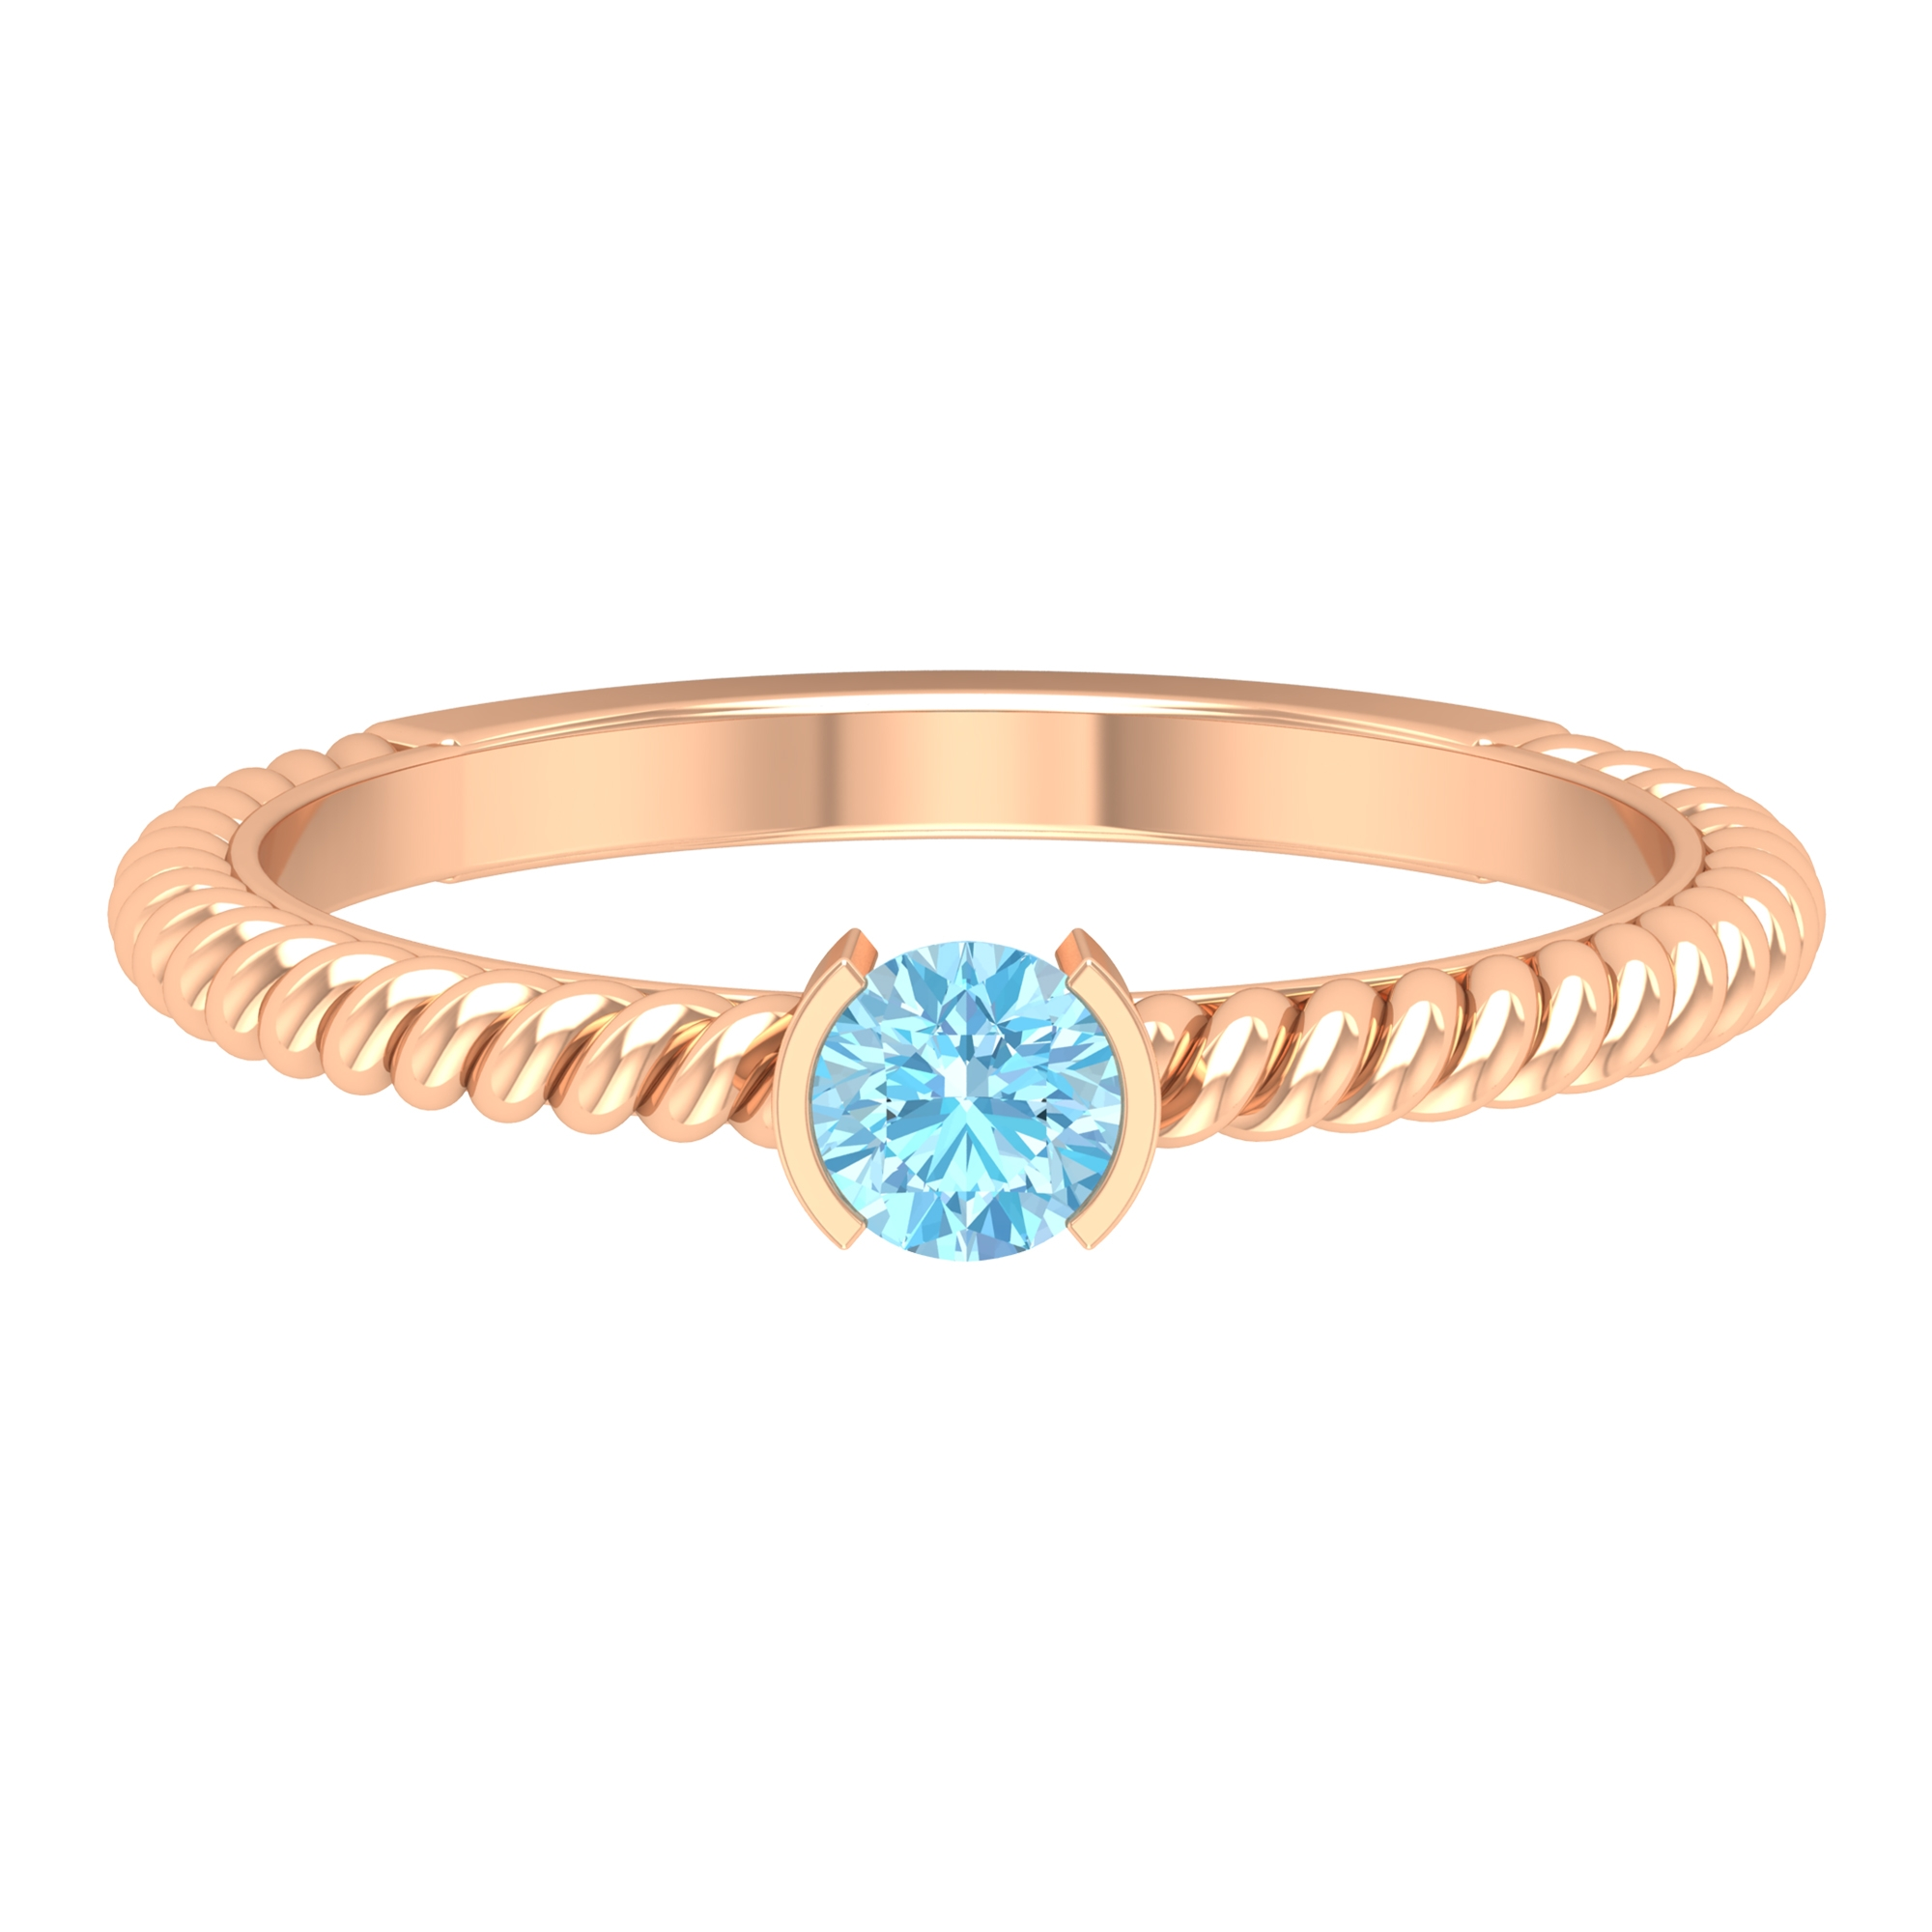 5 MM Round Cut Aquamarine Solitaire Half Bezel Set Ring with Twisted Rope Shank